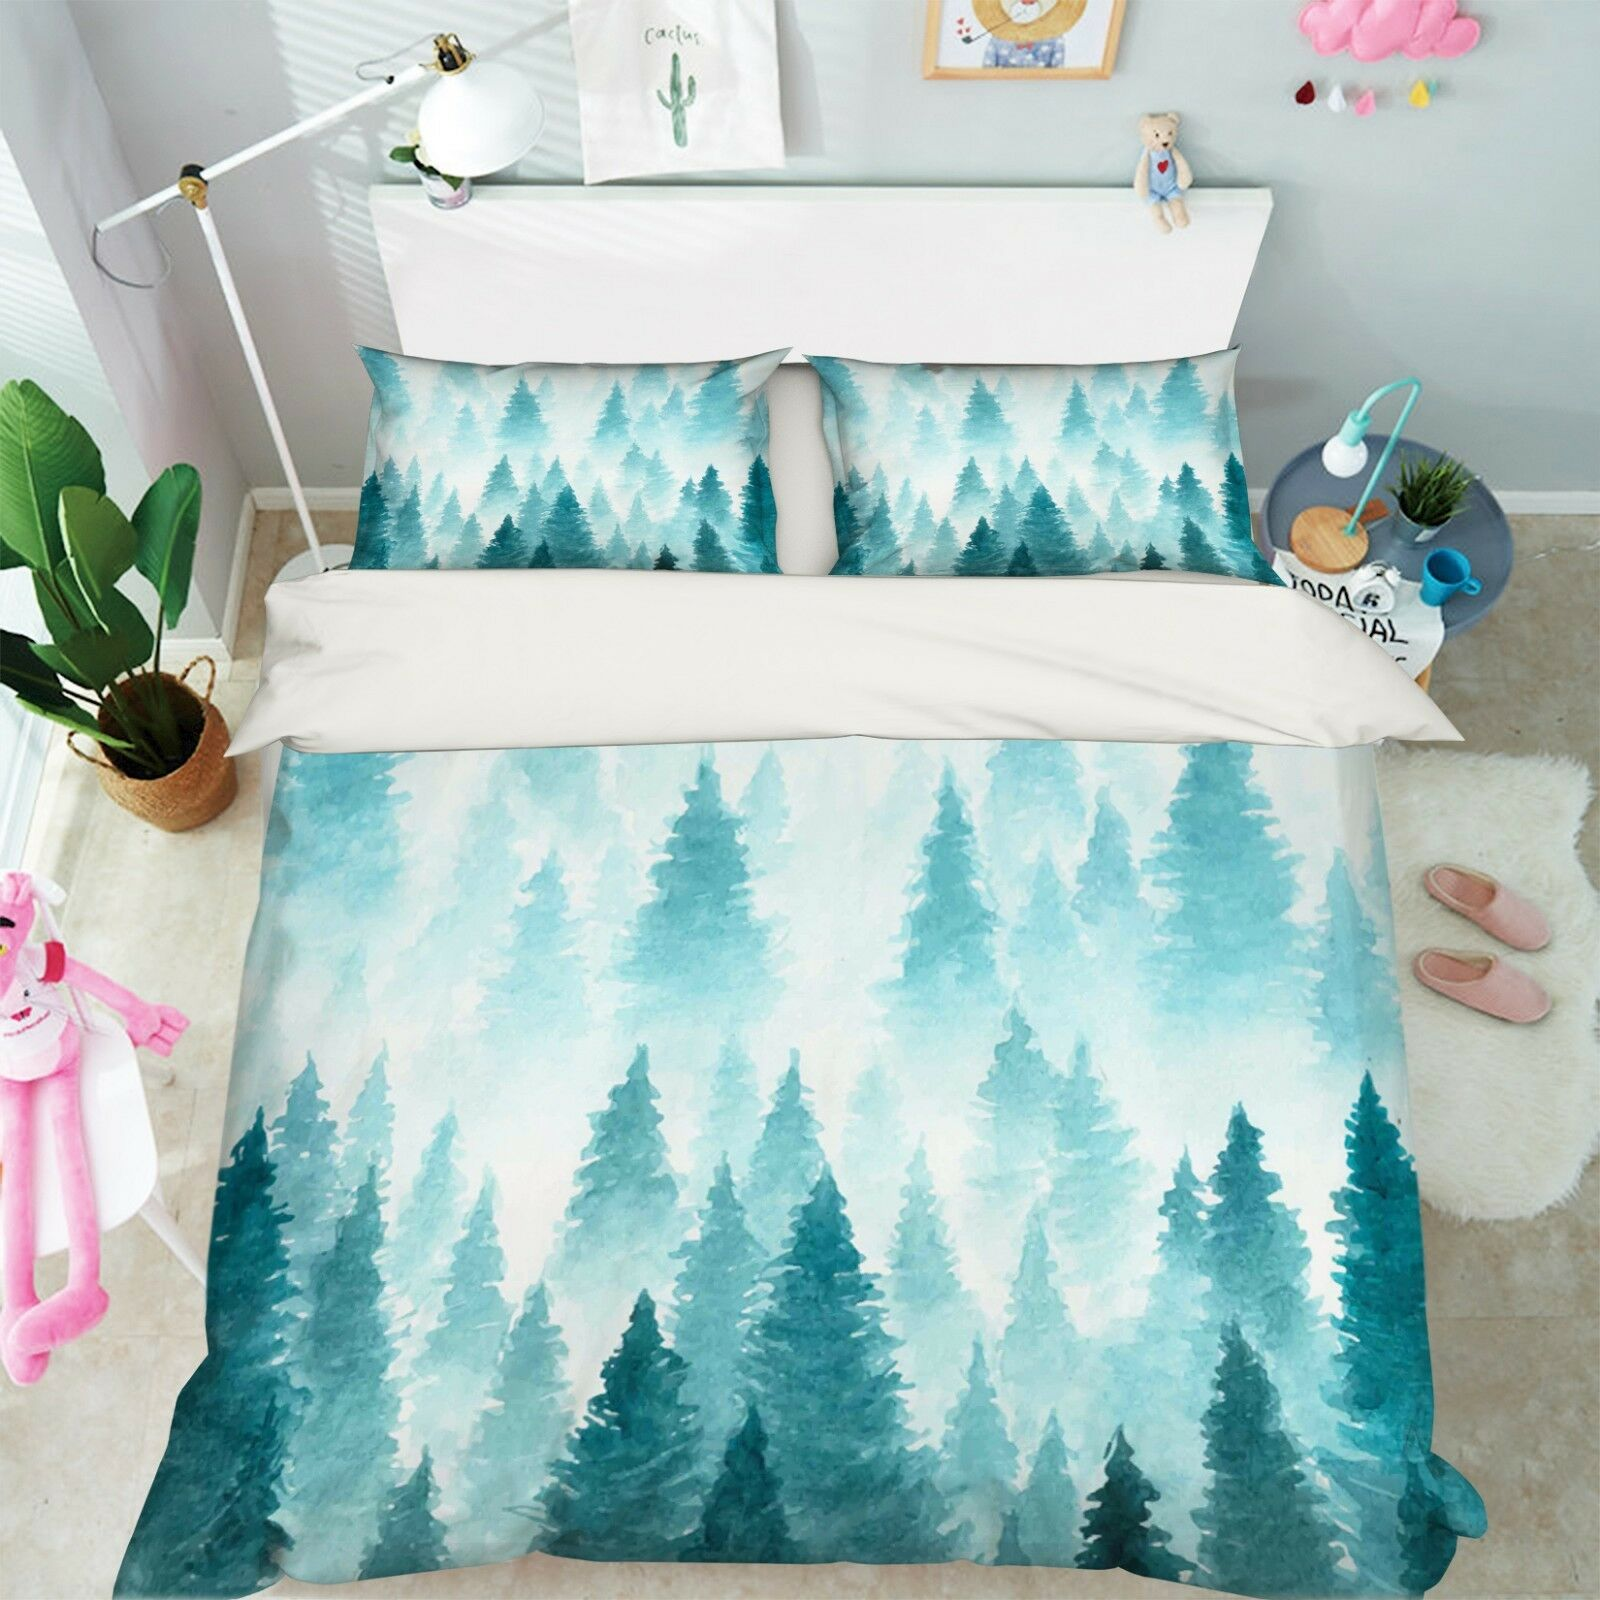 3D Painted Woods 798 Bed Pillowcases Quilt Duvet Cover Set Single Queen King CA